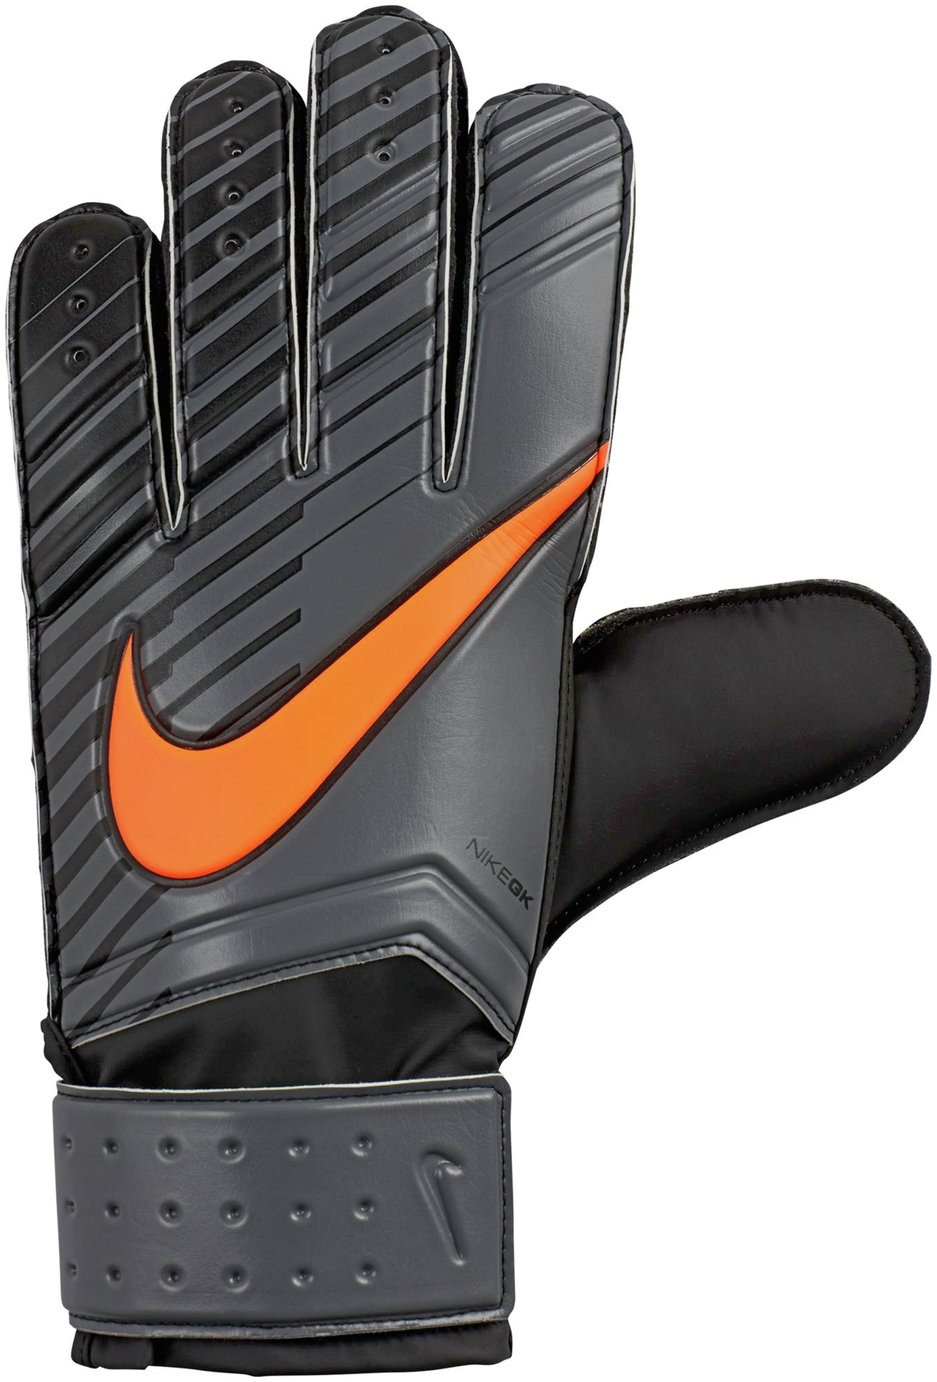 Image of Nike Adult Goalkeeper Gloves